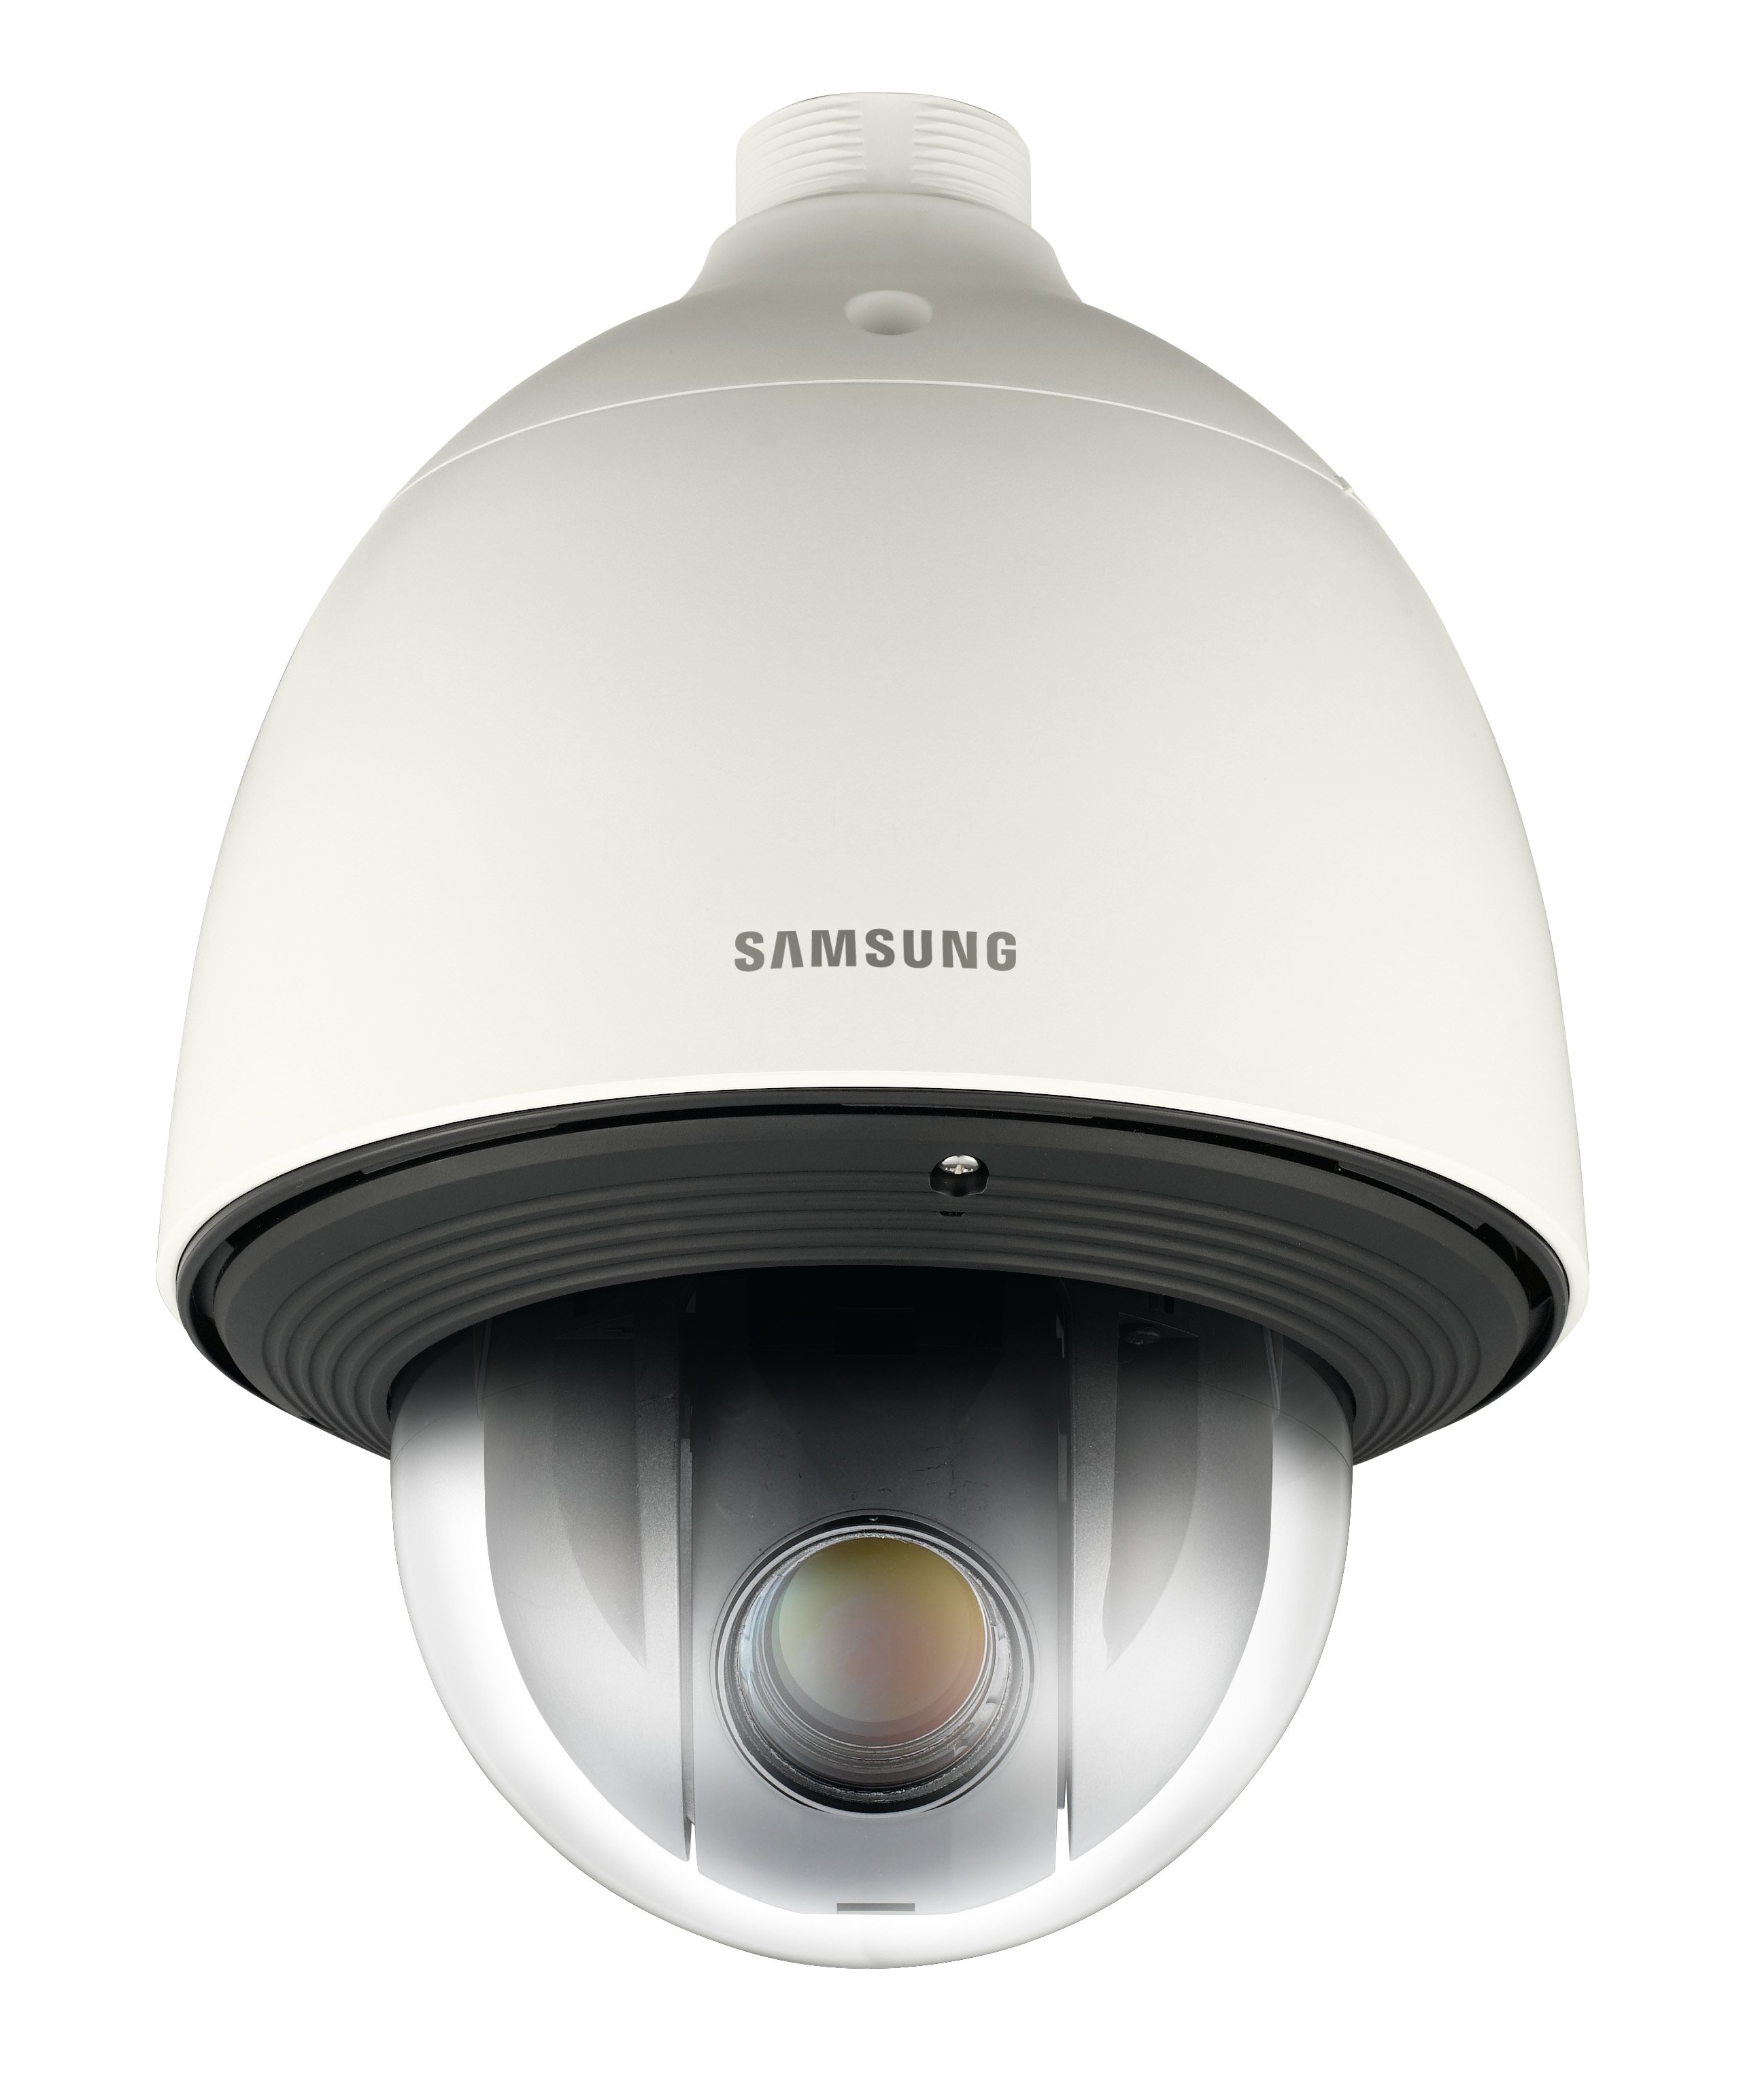 Camera Surveillance Exterieur Ptz Samsung Techwin Launches 1 3mp Hd 43x Ptz Camera